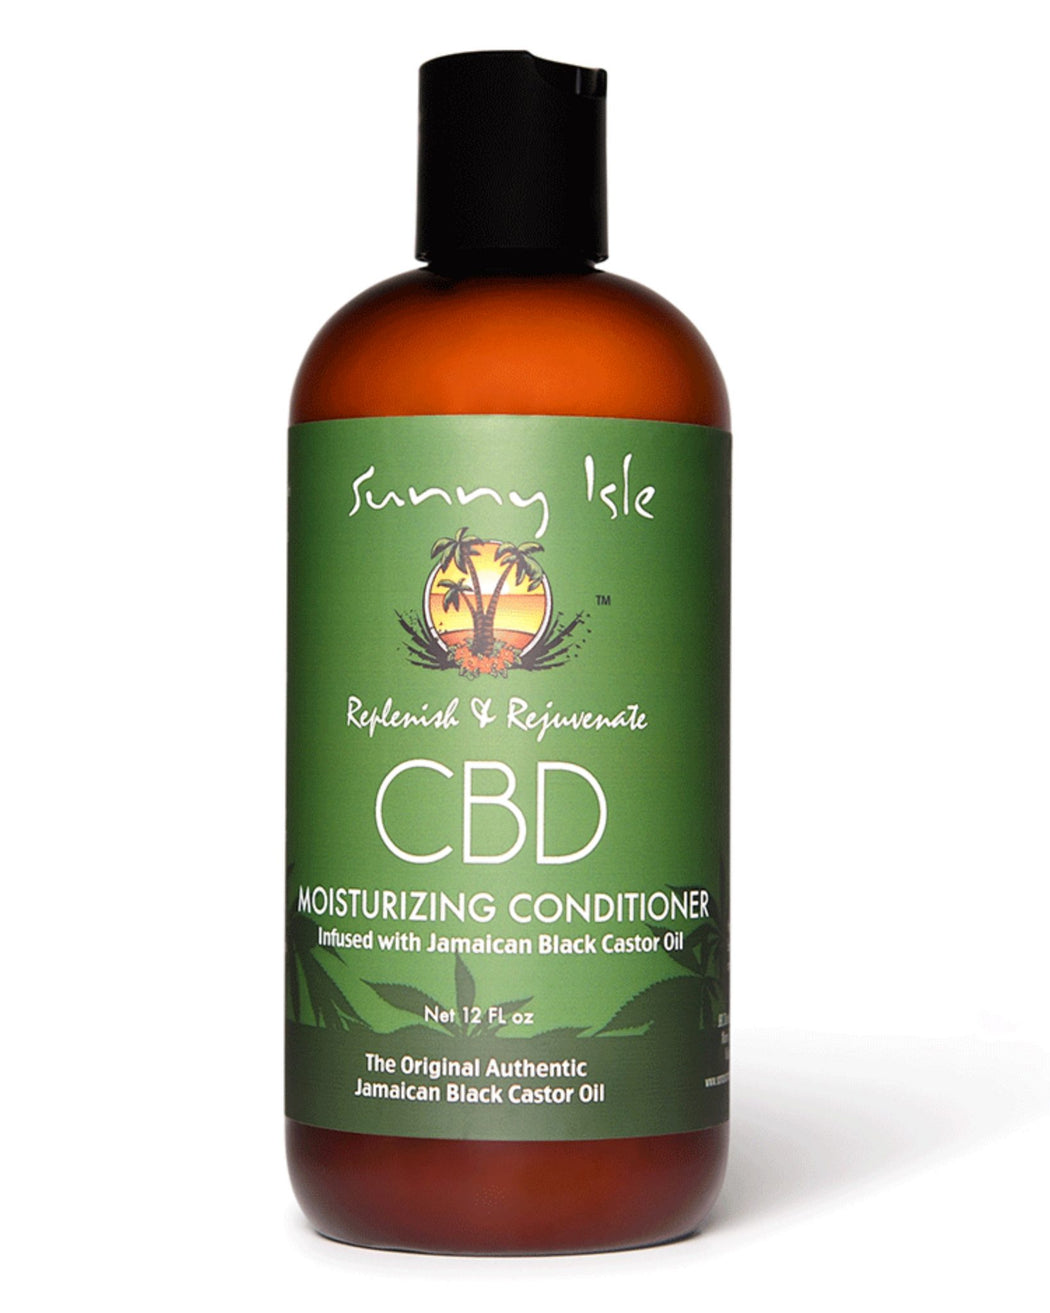 Sunny Isle CBD Moisturising Conditioner Infused with Jamaican Black Castor Oil